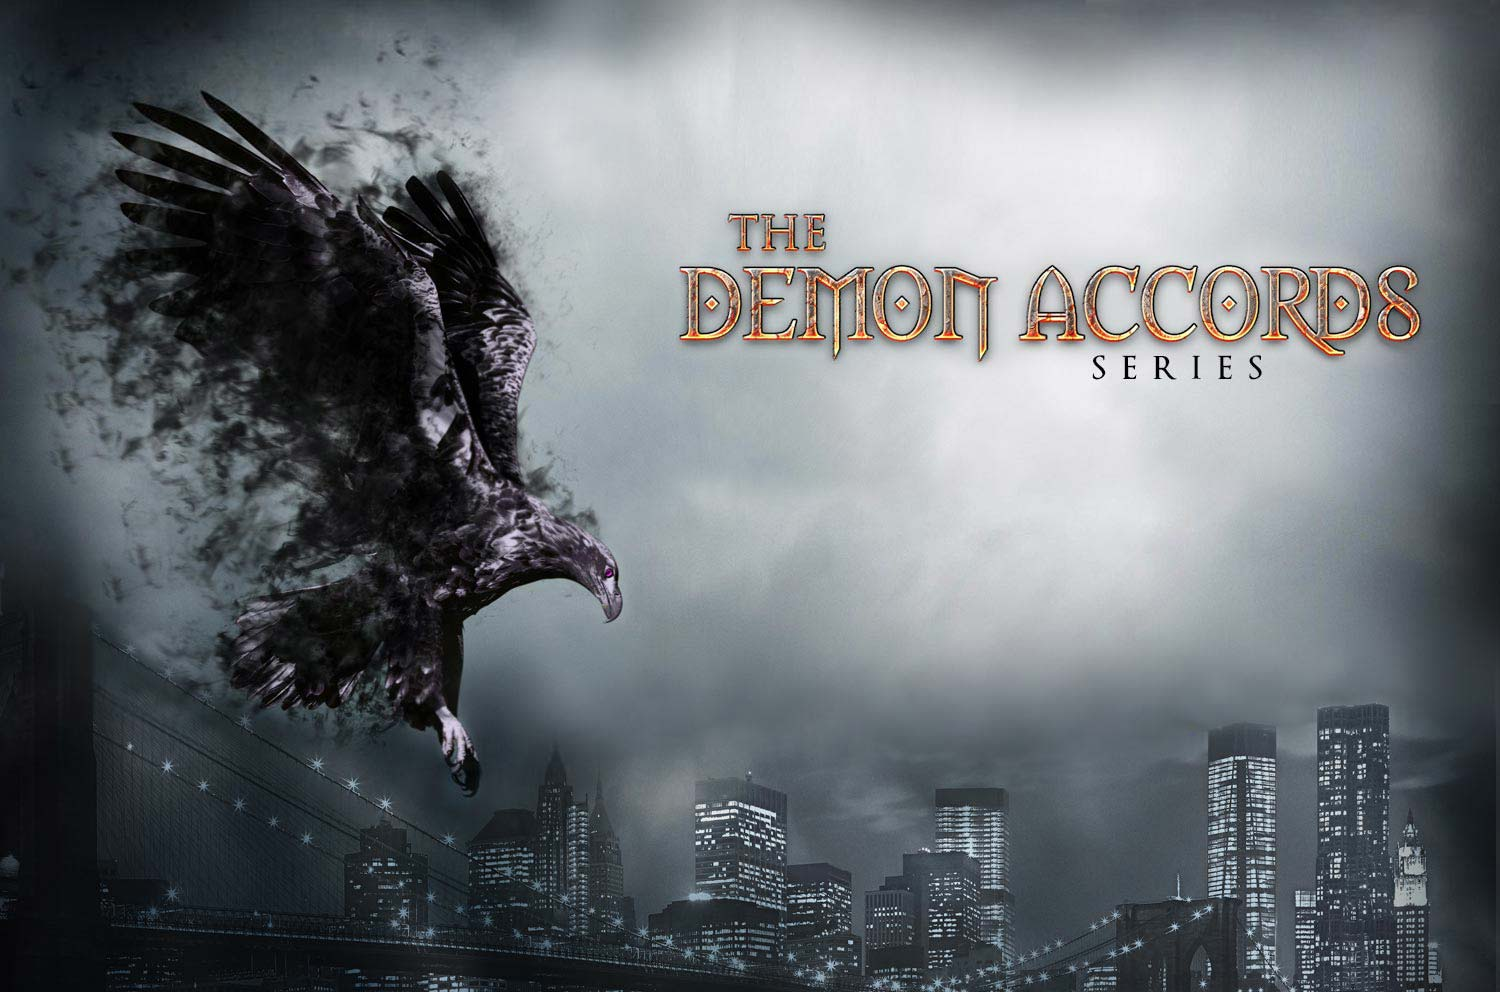 John Conroe - author of the Demon Accords series